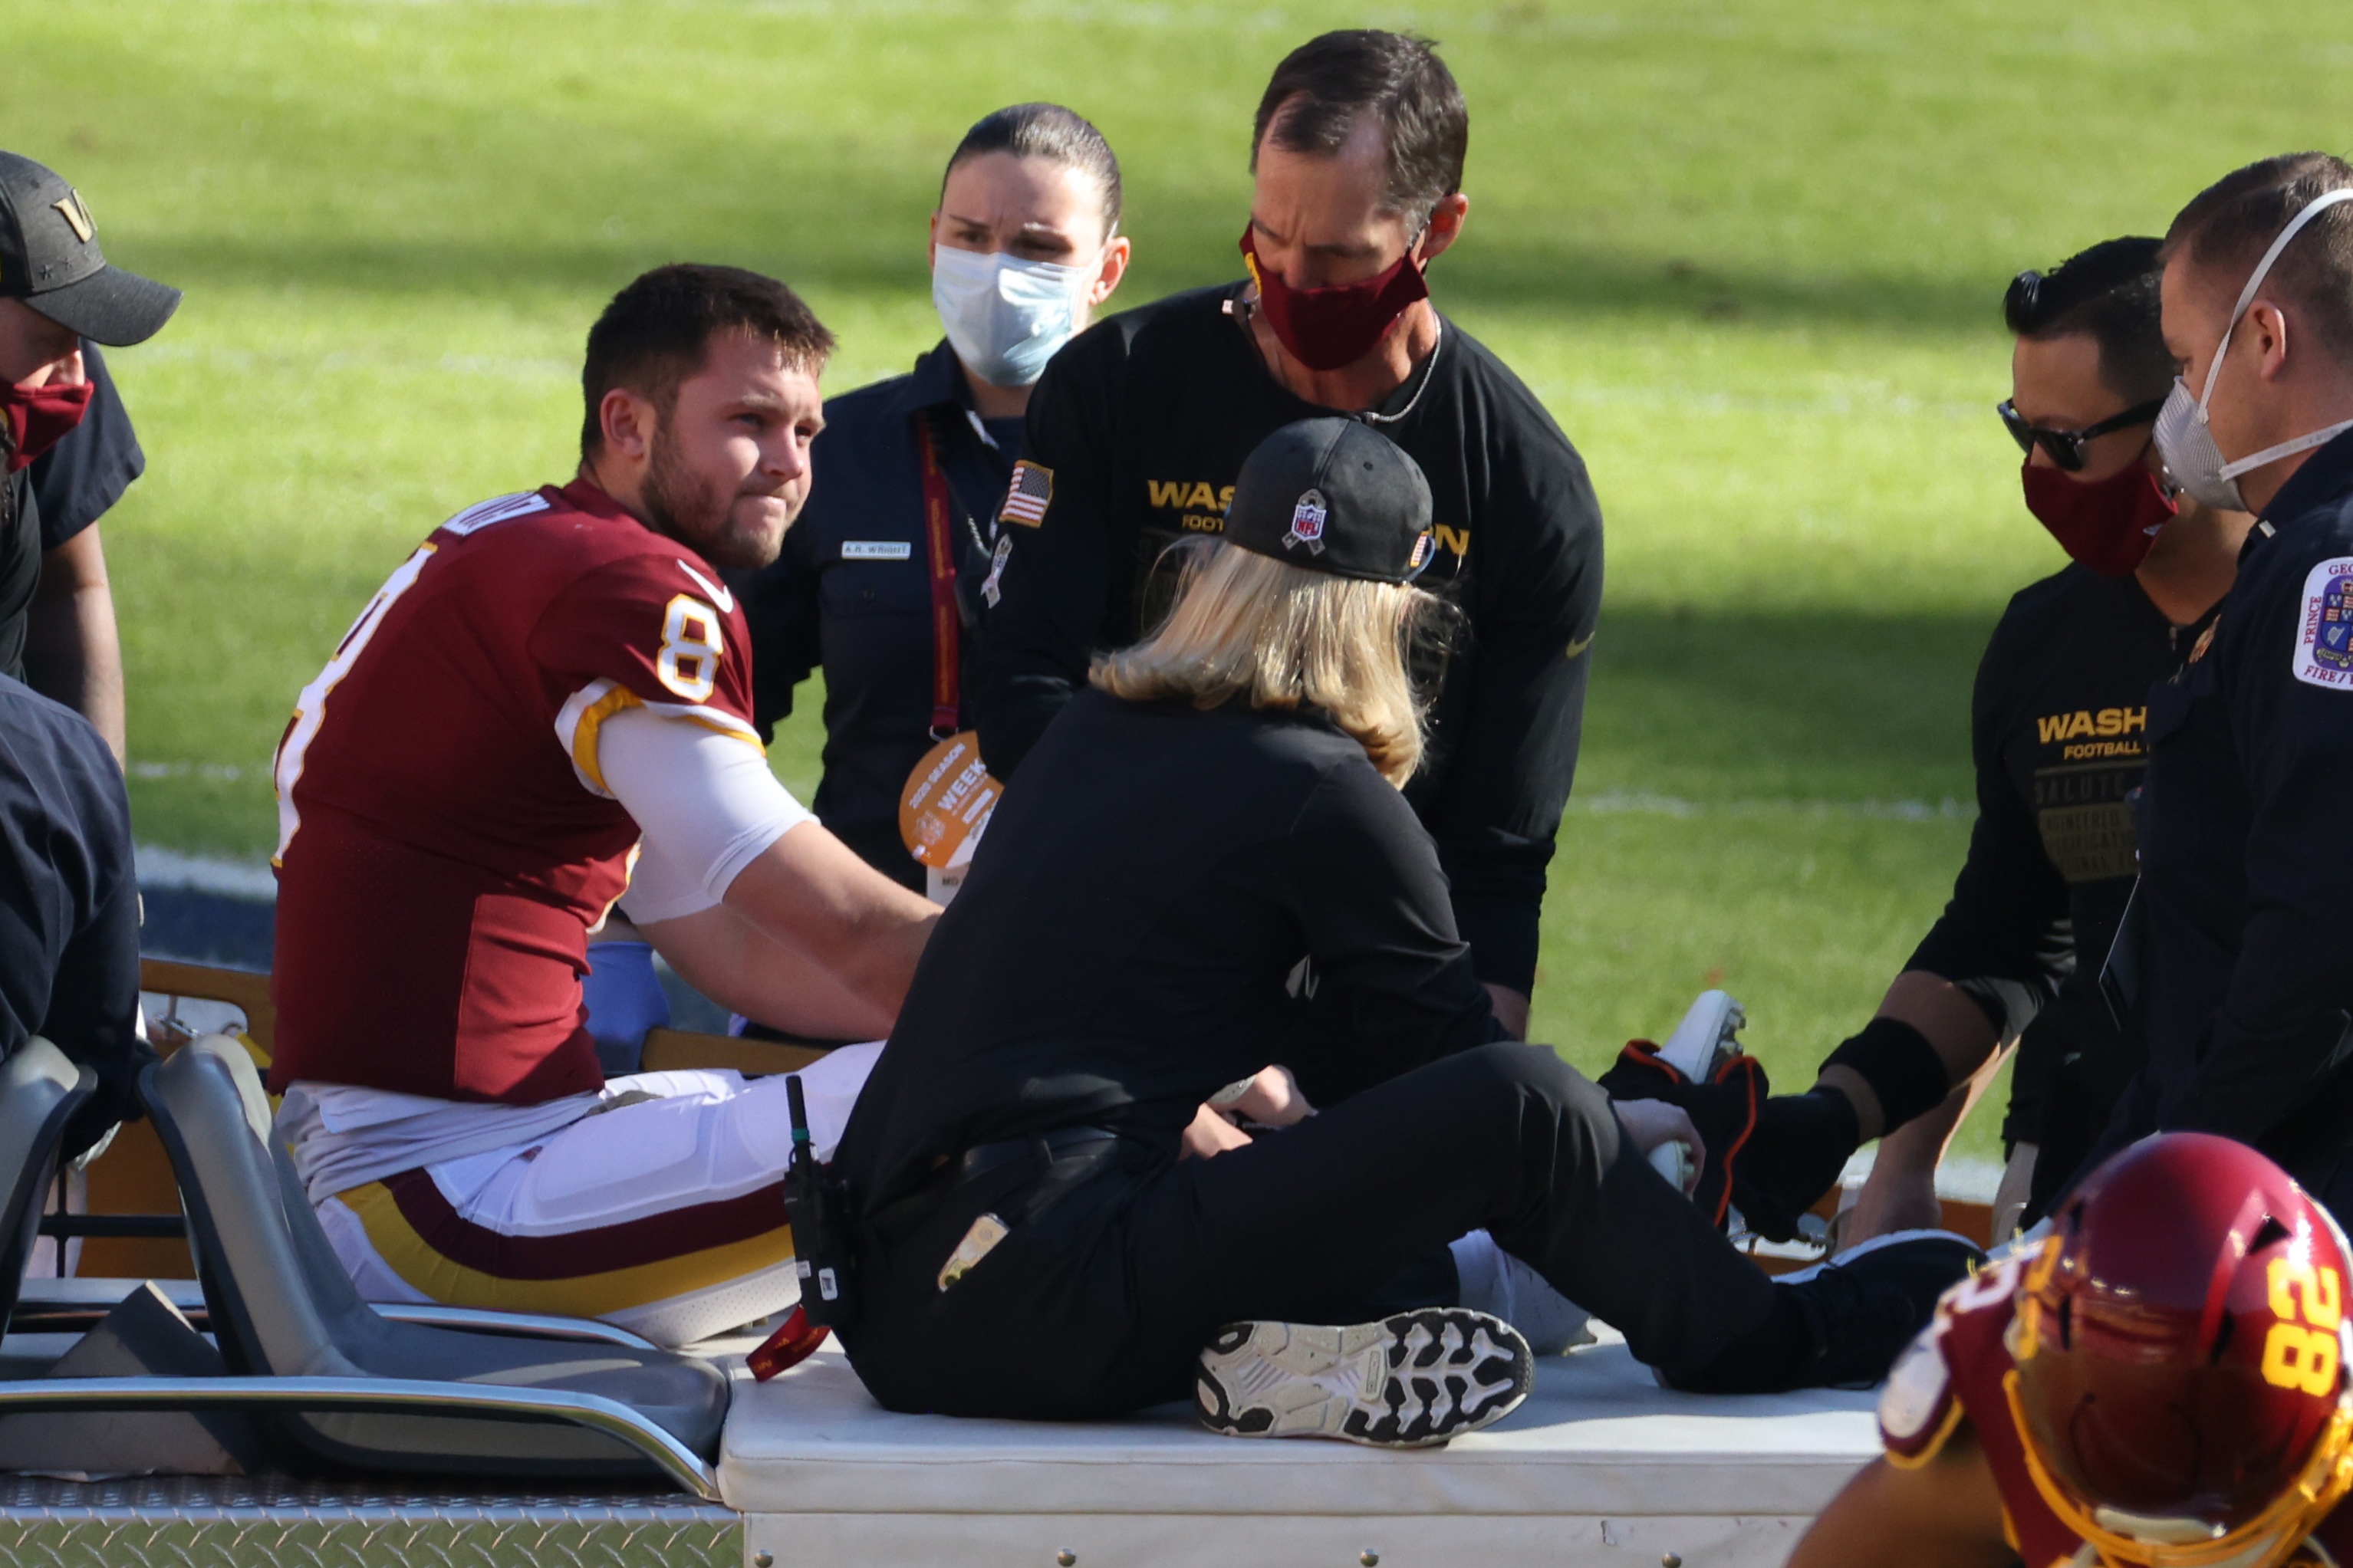 Nfl Kyle Allen Replaced By Alex Smith After Brutal Leg Injury